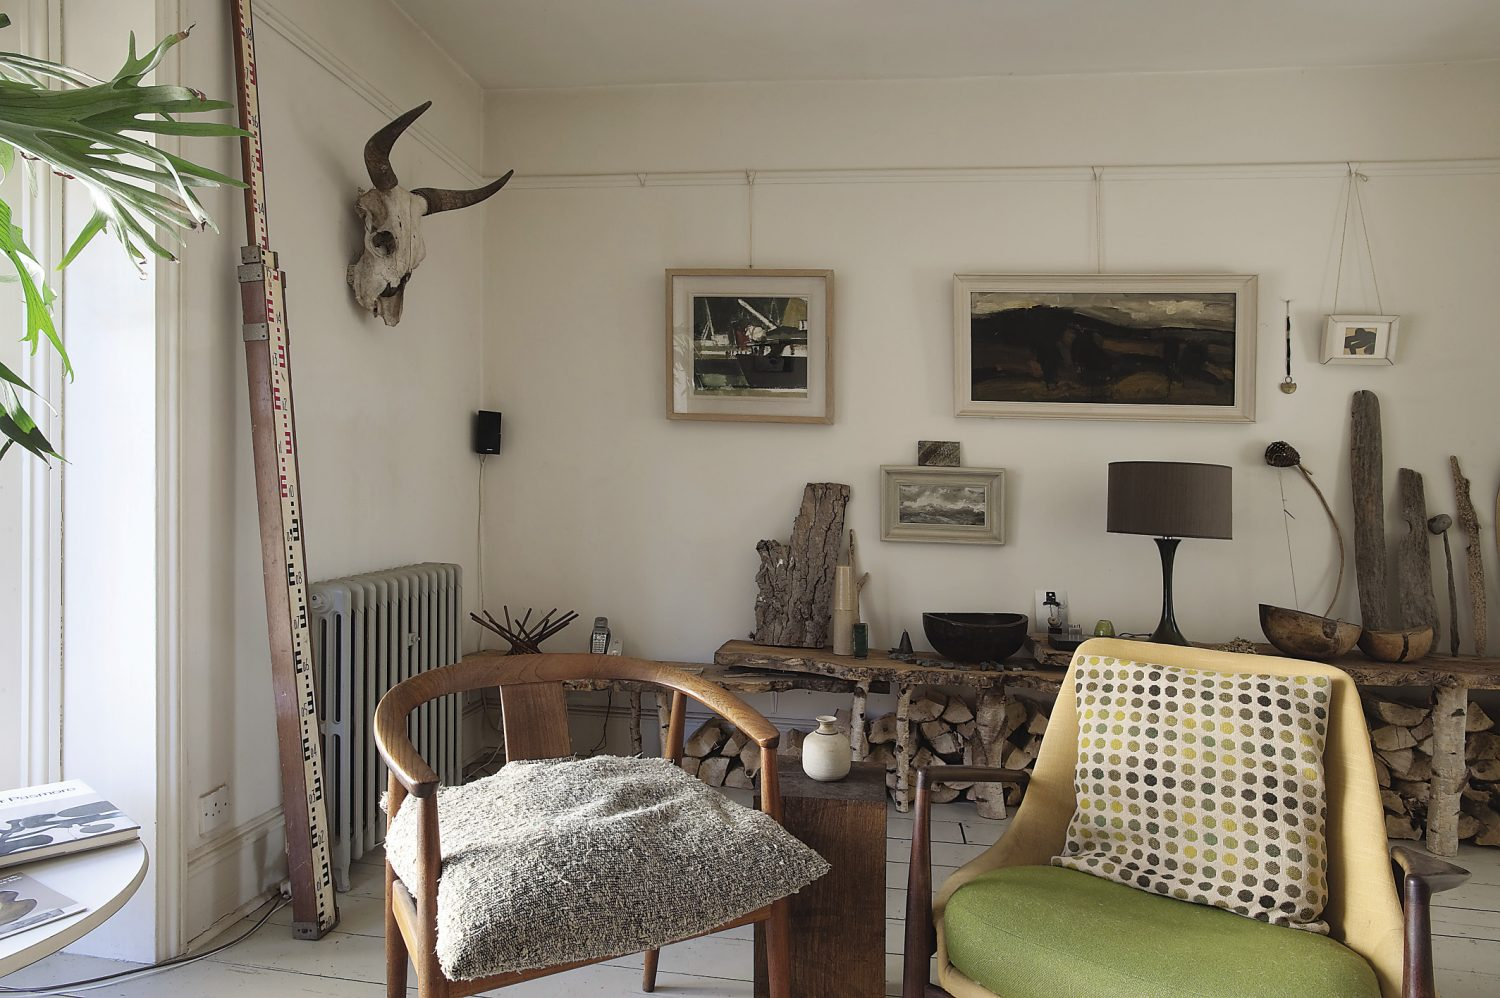 The sitting room. Offcuts from an elm tree have been used to make a shelf on one wall, supported by legs made from silver birch logs.